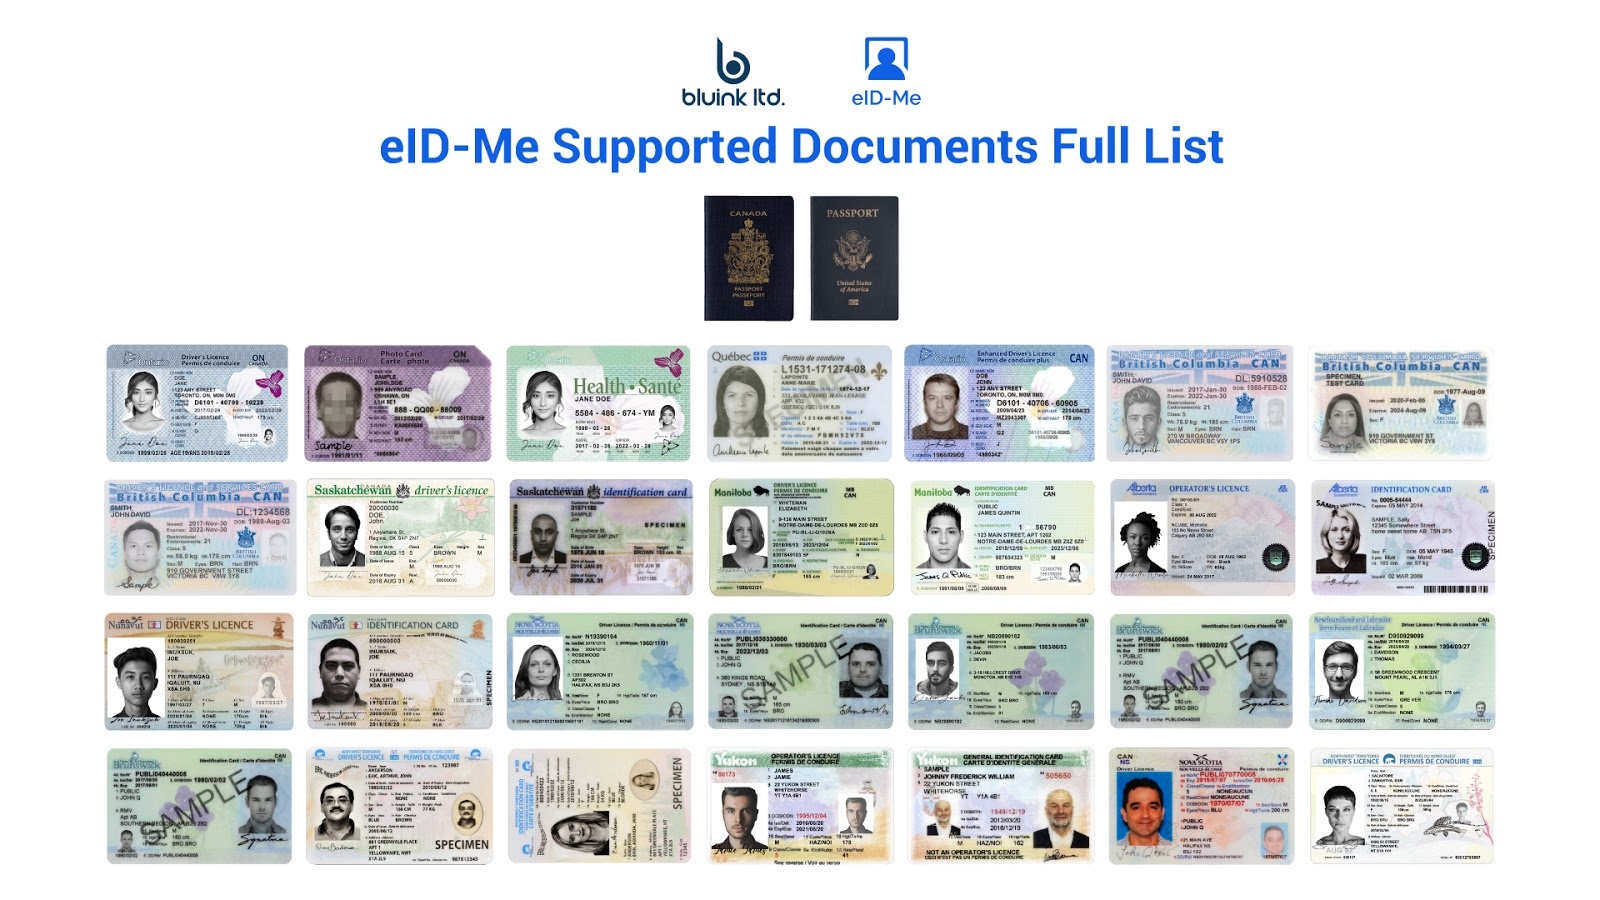 Passports, driver's licences, and photo identity cards from Canada